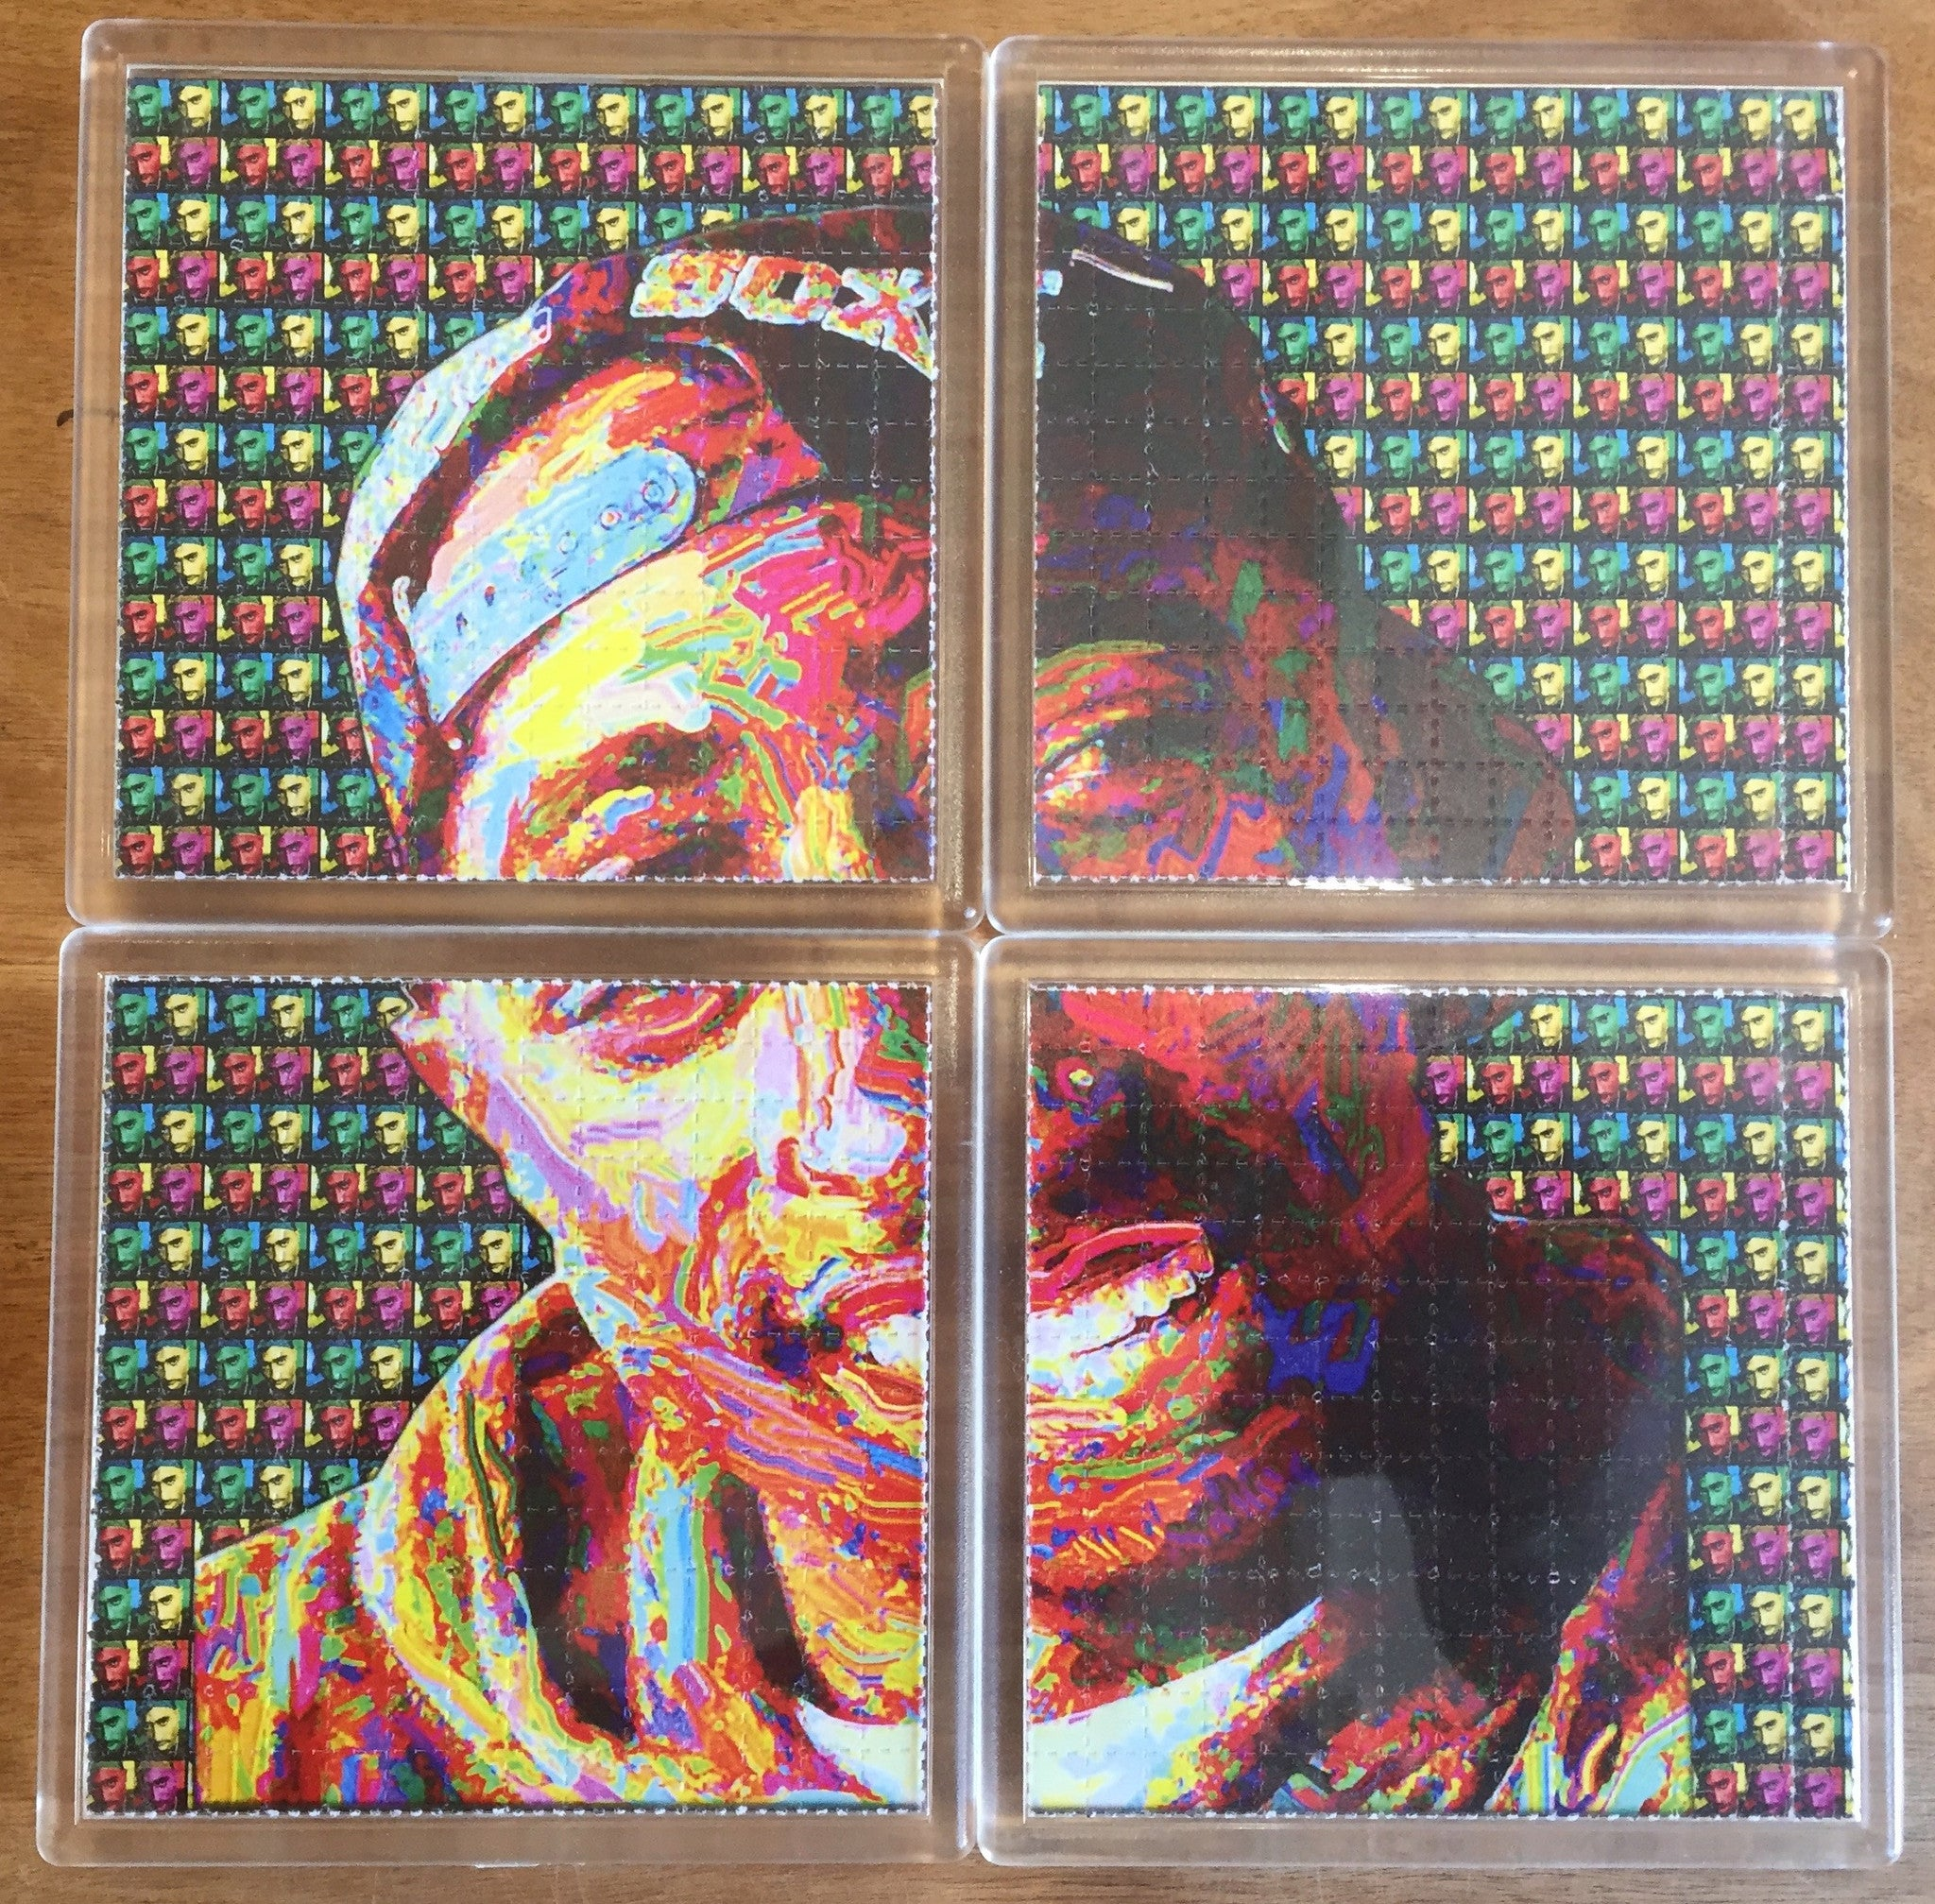 Tupac Shakur / 2Pac - Psychedelic - Blotter Art - Highly Collectible Artwork Blotter Paper Coaster (4 pack)